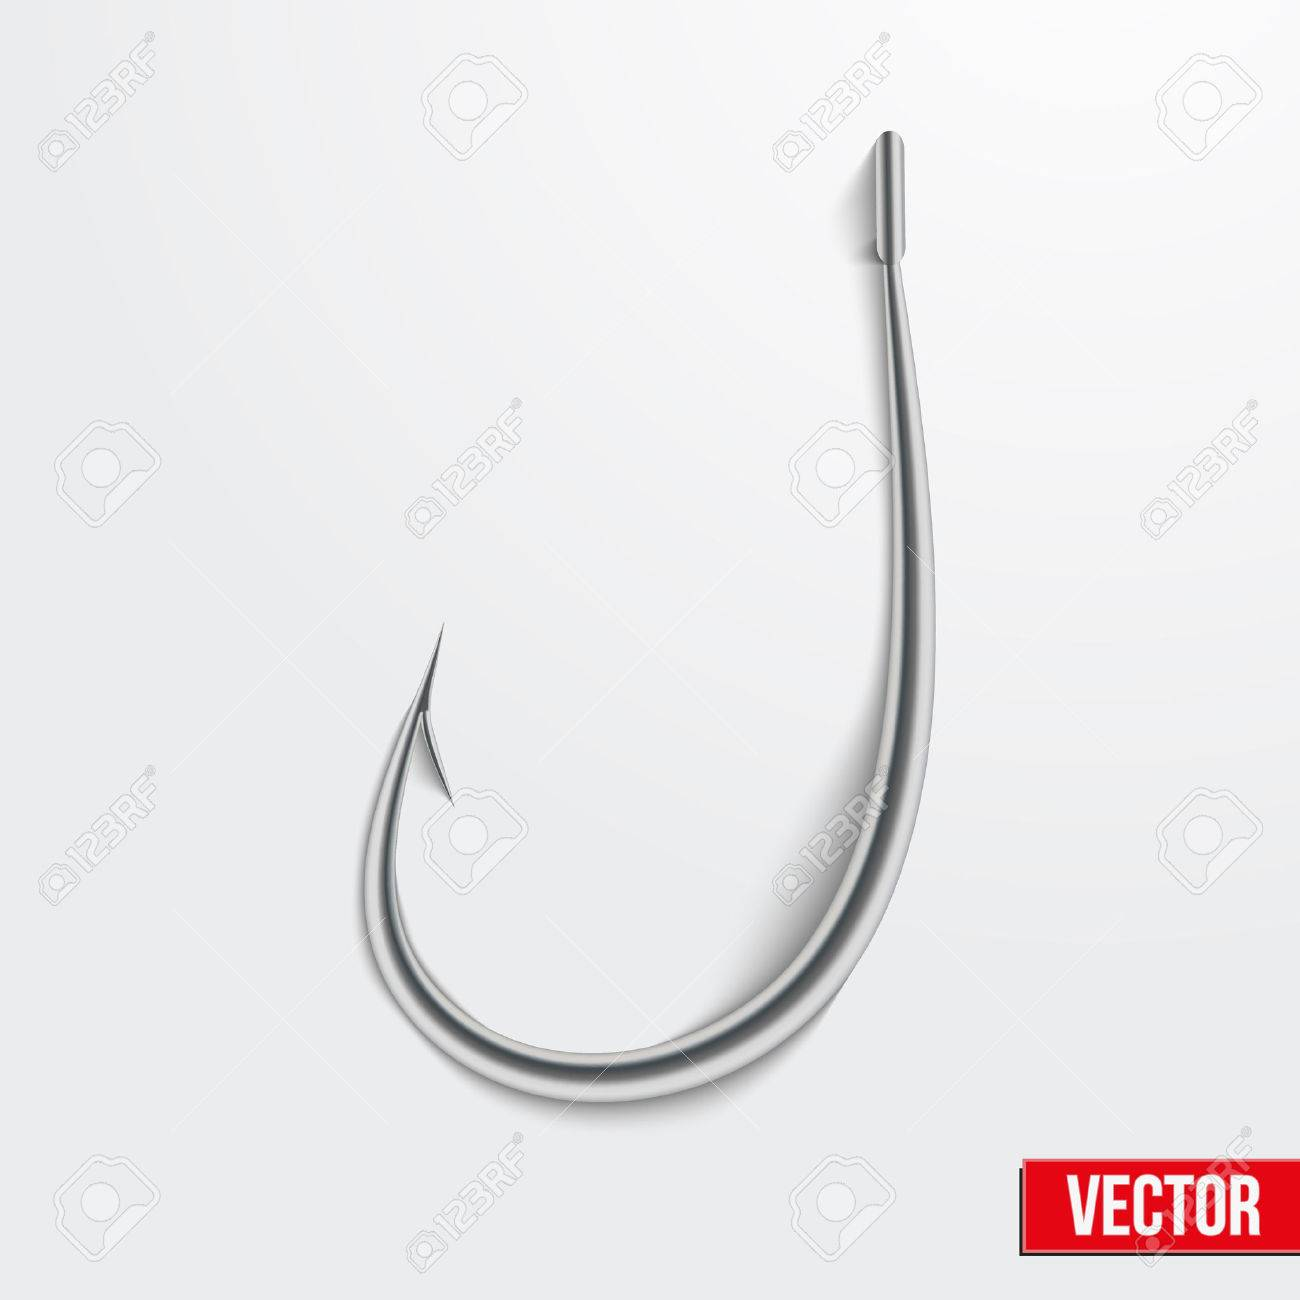 Realistic fishing hook vector illustration. Bright symbols. Editable and isolated. Stock Vector - 22765536